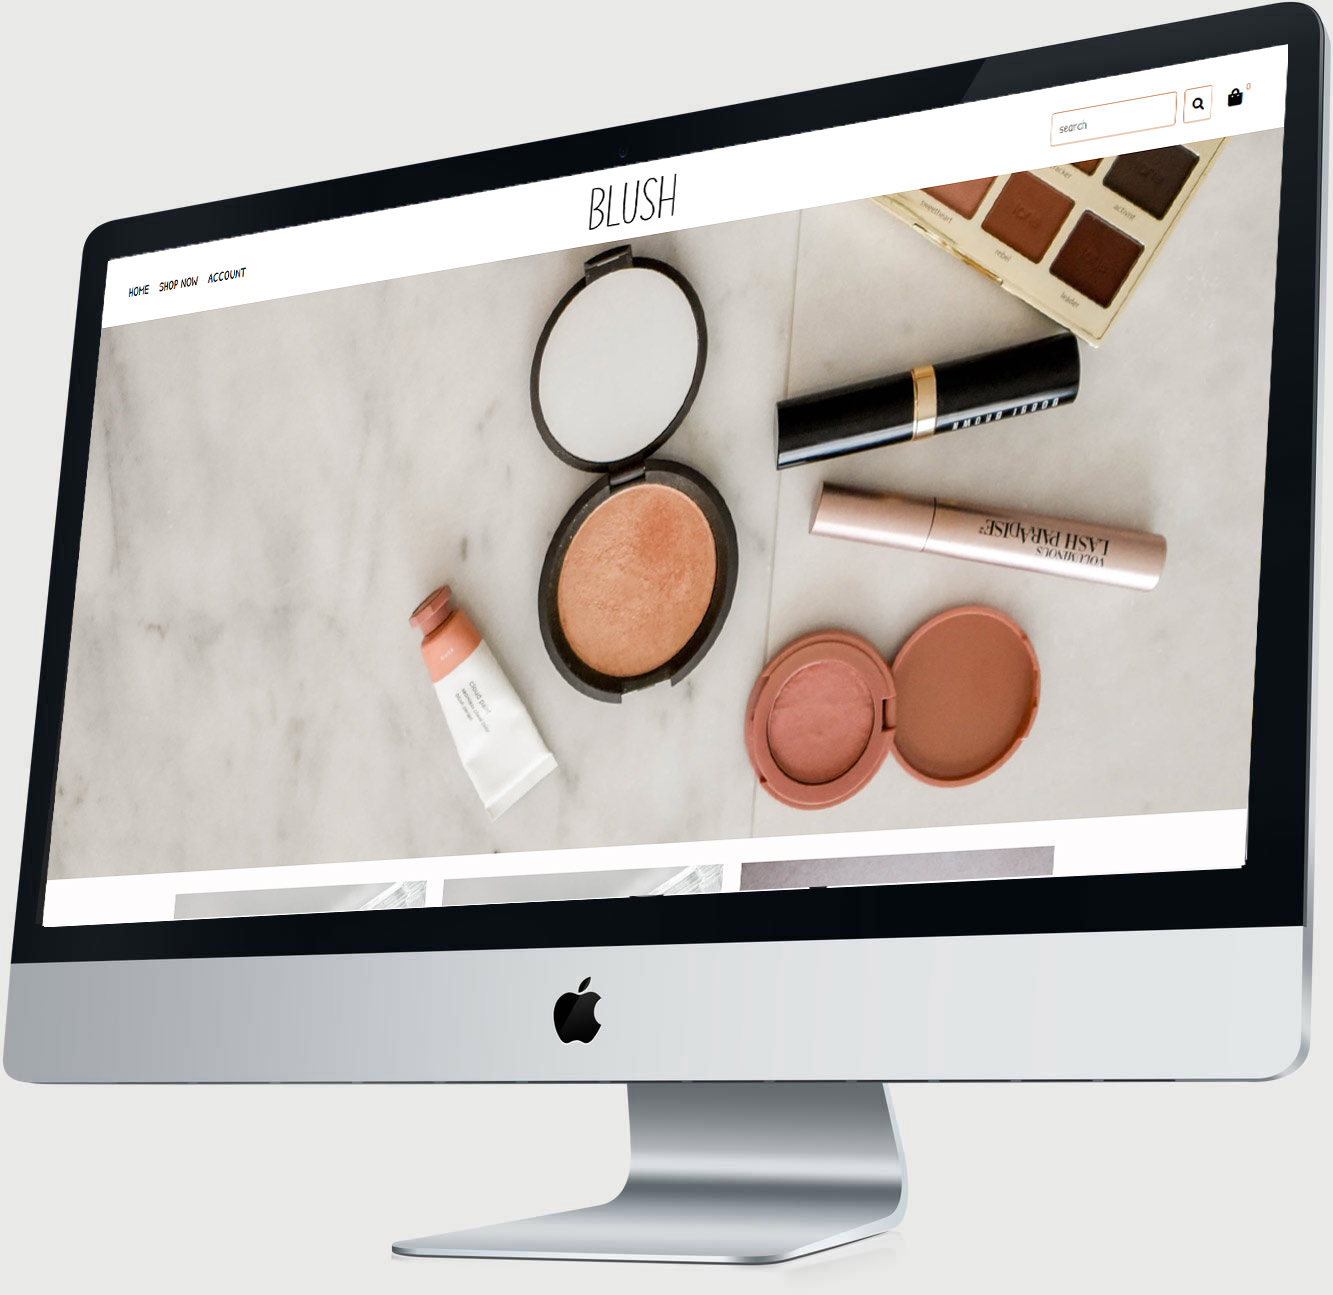 Blush Mac Display